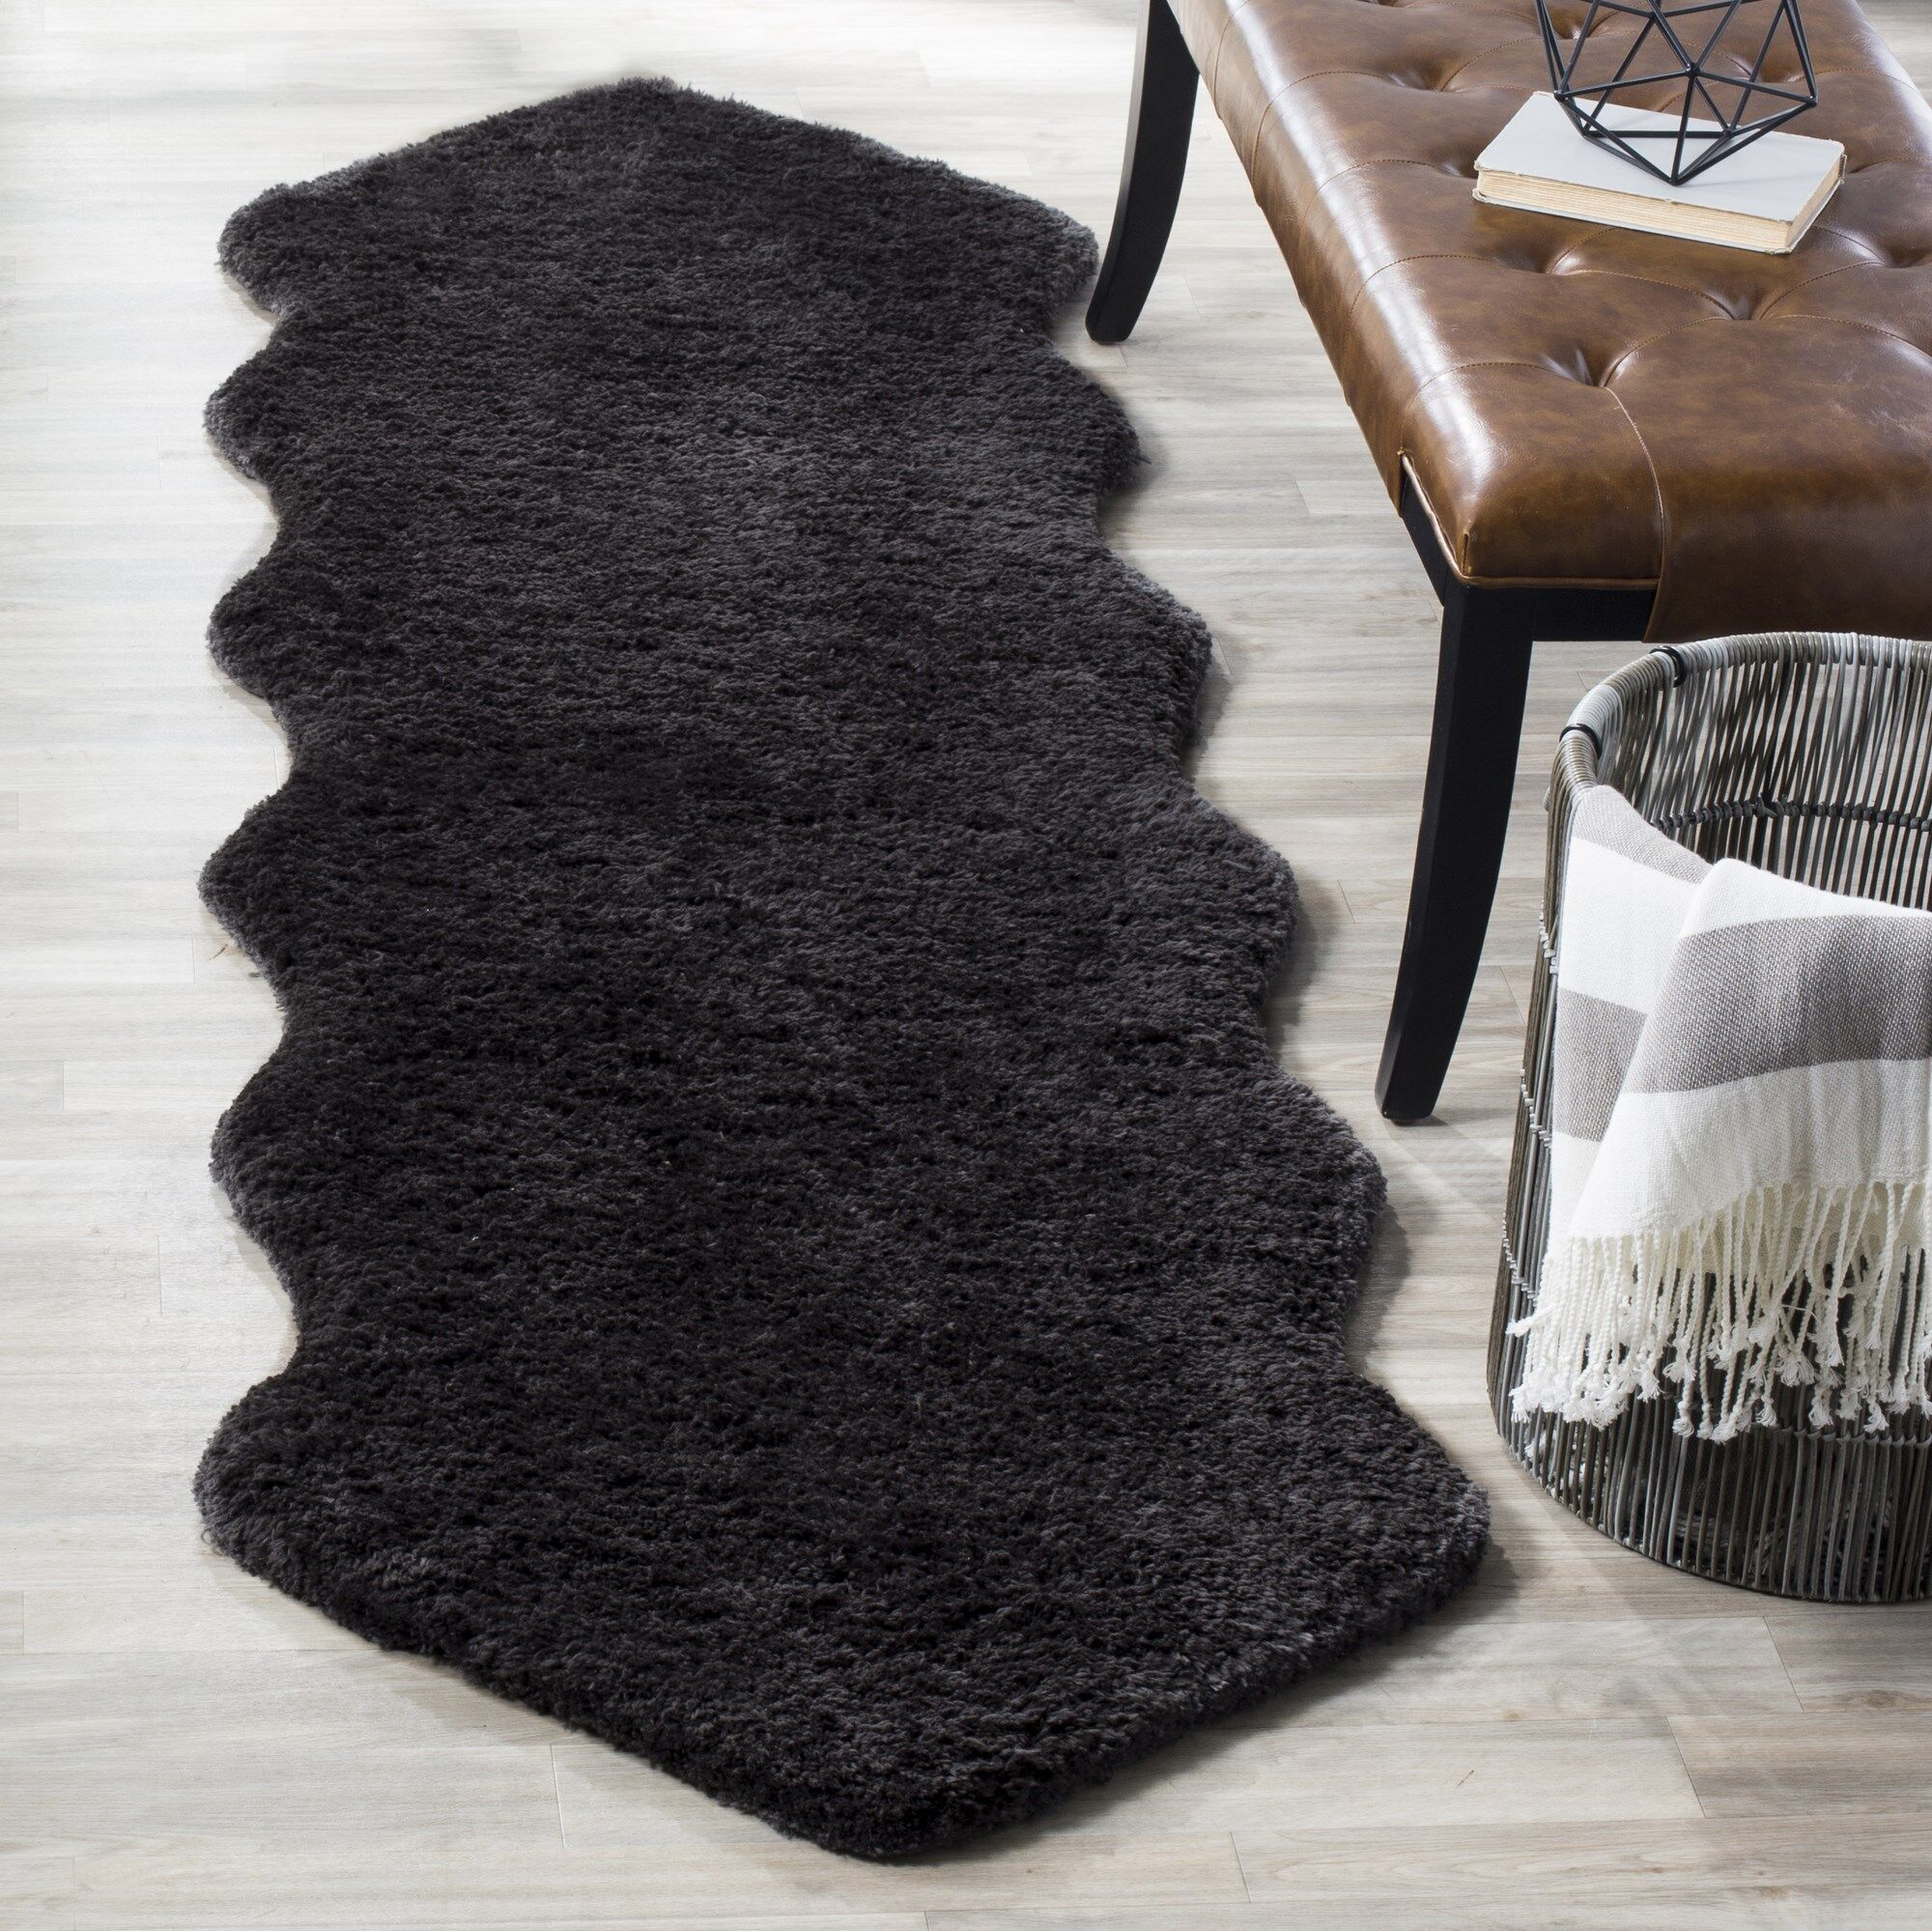 Isacc Hand-Tufted Charcoal Area Rug Rug Size: 5' x 8'